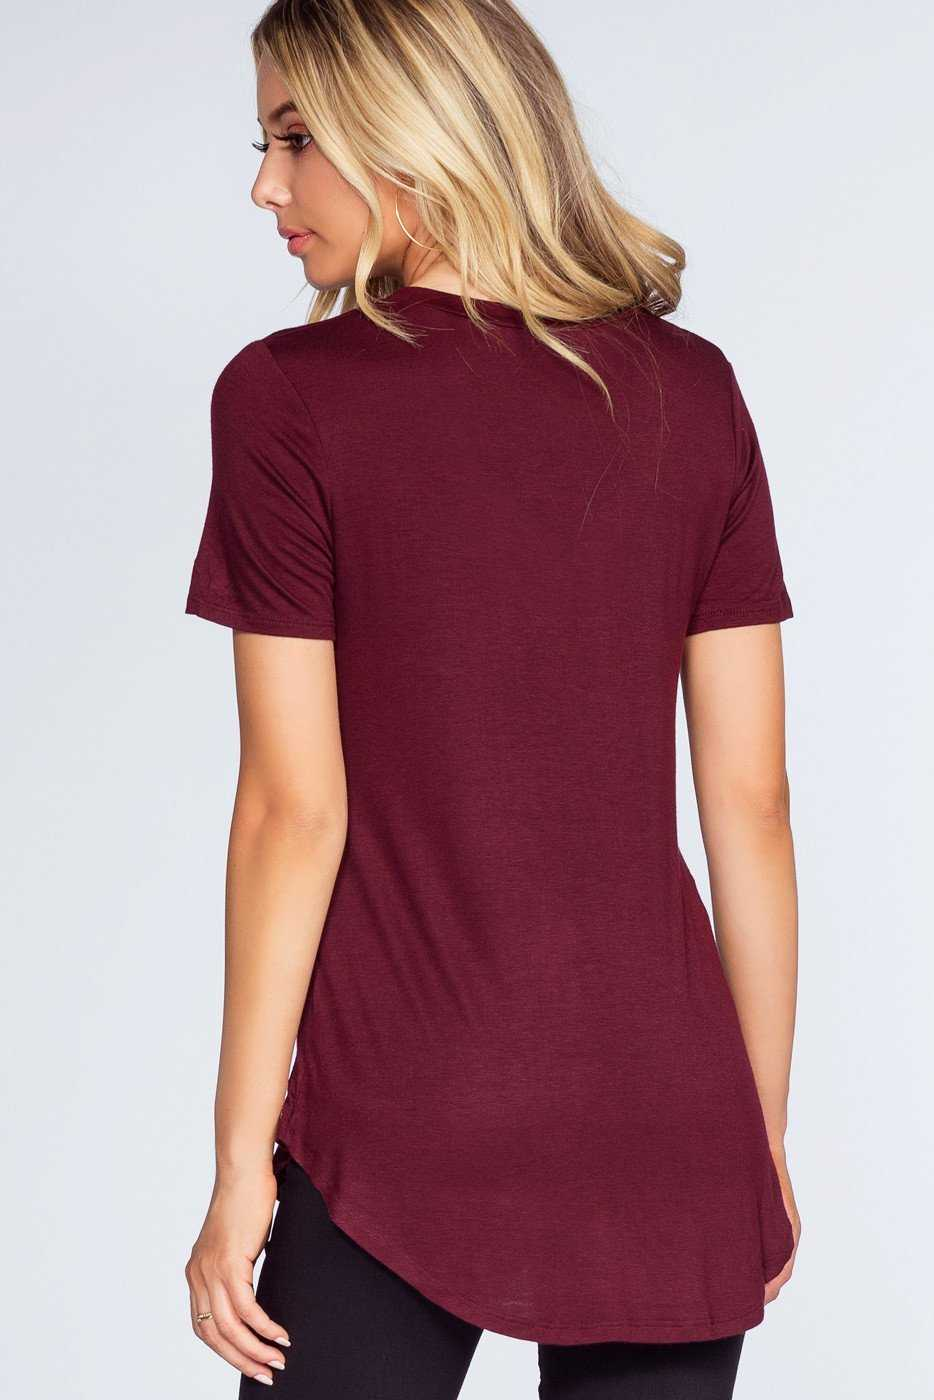 Tops - Alli Distressed Tee - Burgundy